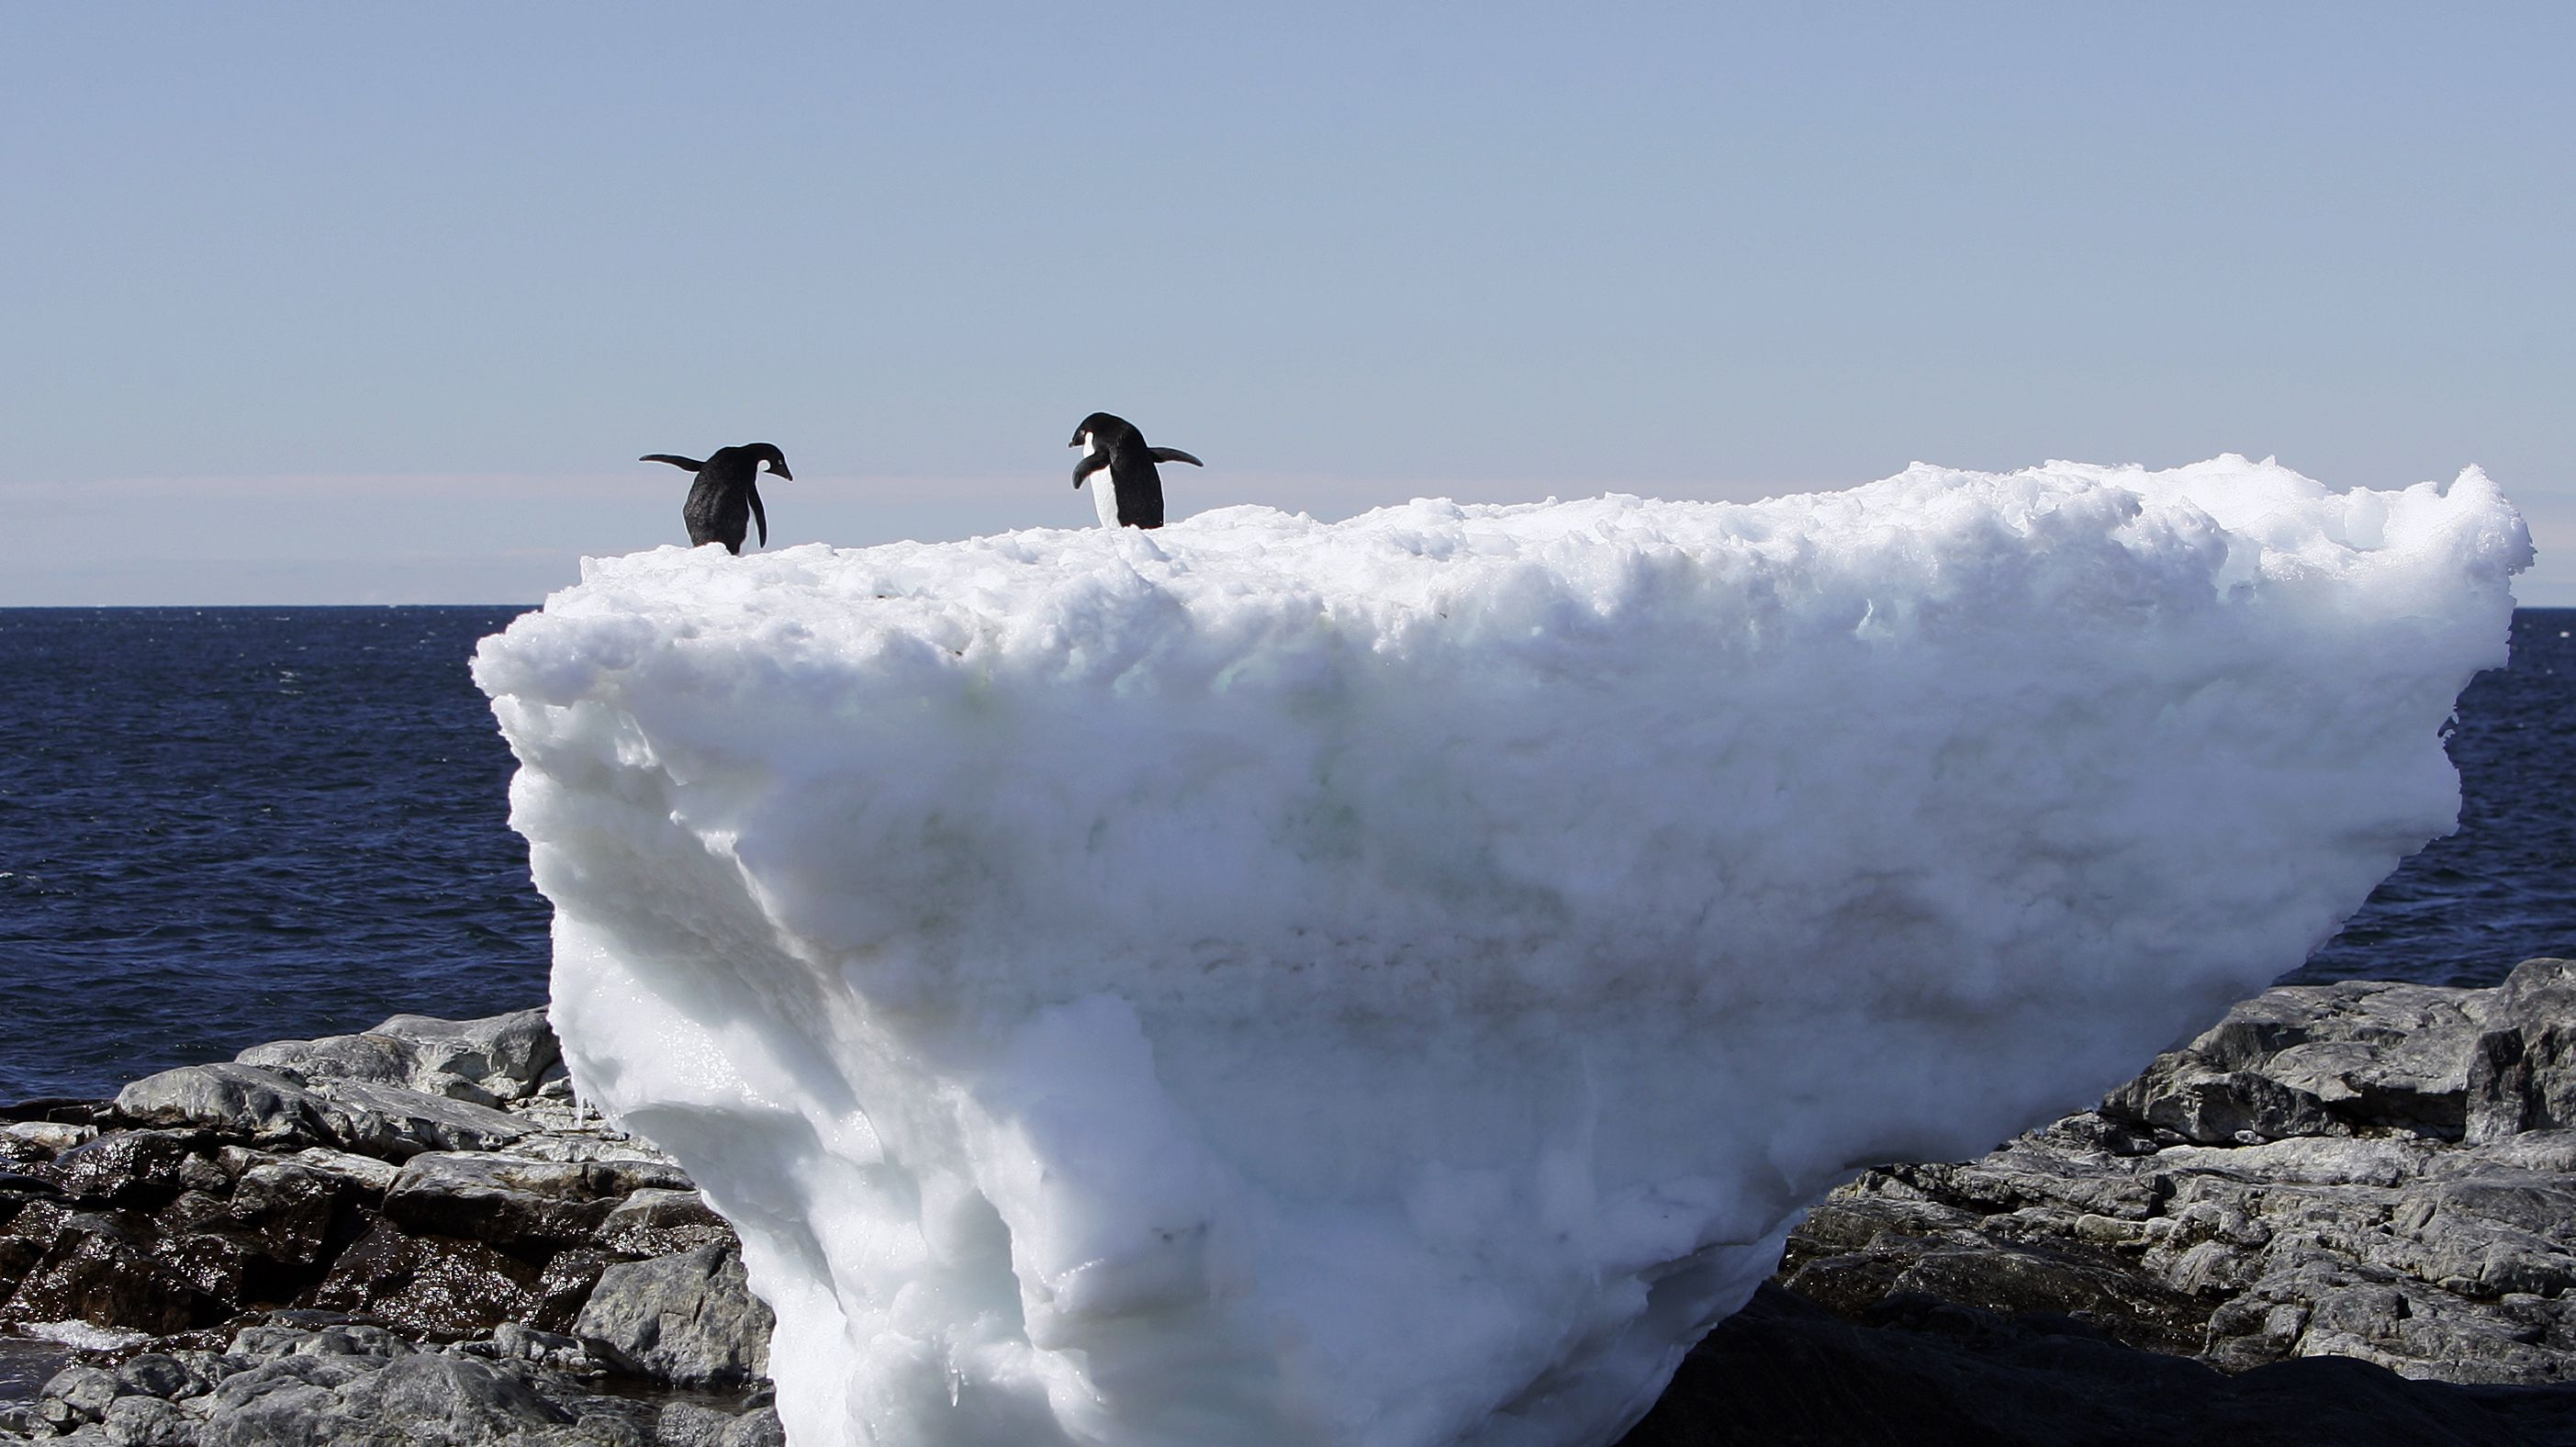 """Two Adelie penguins stand atop a block of melting ice on a rocky shoreline at Cape Denison, Commonwealth Bay, in East Antarctica January 1, 2010. Russia and the Ukraine on November 1, 2013 again scuttled plans to create the world's largest ocean sanctuary in Antarctica, pristine waters rich in energy and species such as whales, penguins and vast stocks of fish, an environmentalist group said. The Commission for the Conservation of Antarctic Marine Living Resources wound up a week-long meeting in Hobart, Australia, considering proposals for two """"marine protected areas"""" aimed at conserving the ocean wilderness from fishing, drilling for oil and other industrial interests. Picture taken January 1, 2010. To match story ANTARCTIC-ENVIRONMENT/ REUTERS/Pauline Askin"""